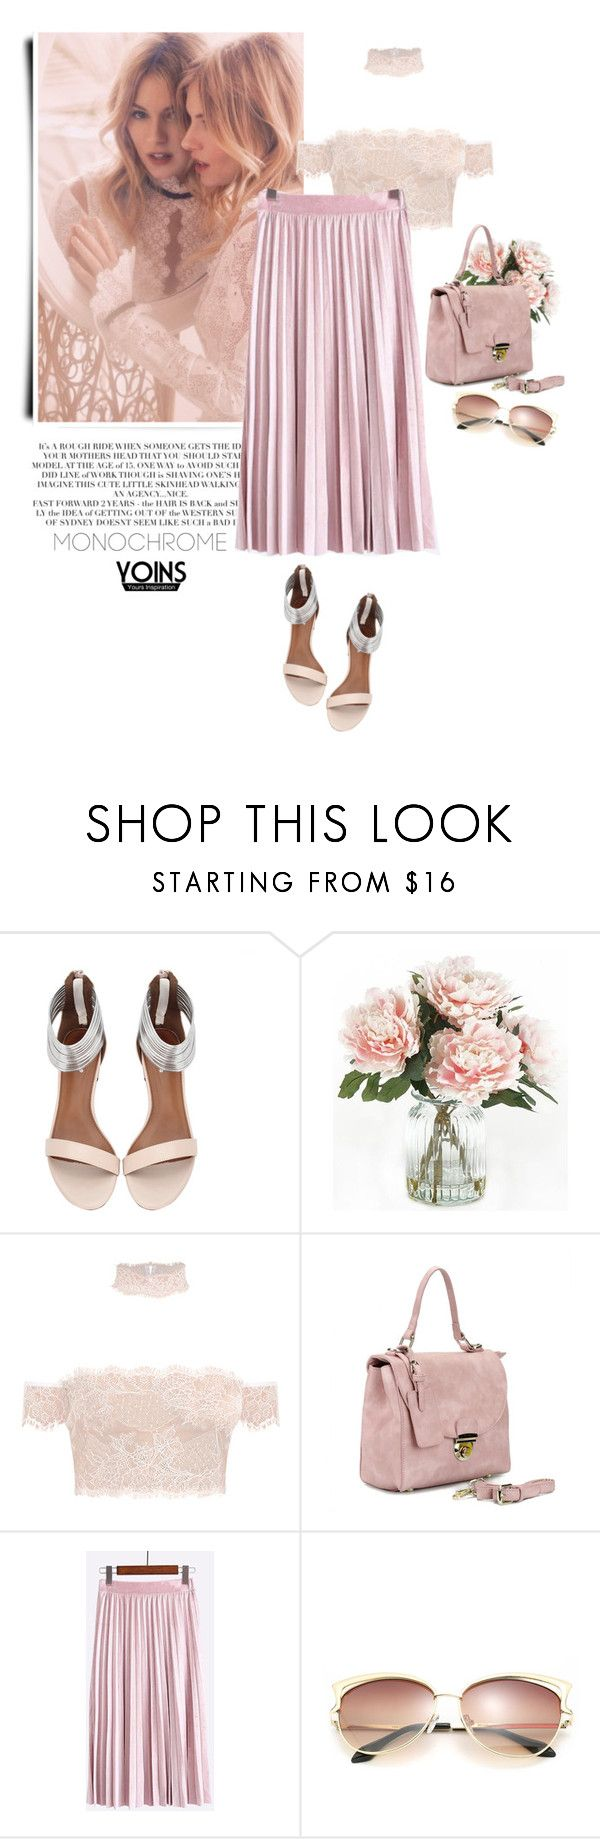 """""""Pink - Yoins"""" by yexyka ❤ liked on Polyvore featuring Rachel, Home Decorators Collection, yoins, yoinscollection and loveyoins"""